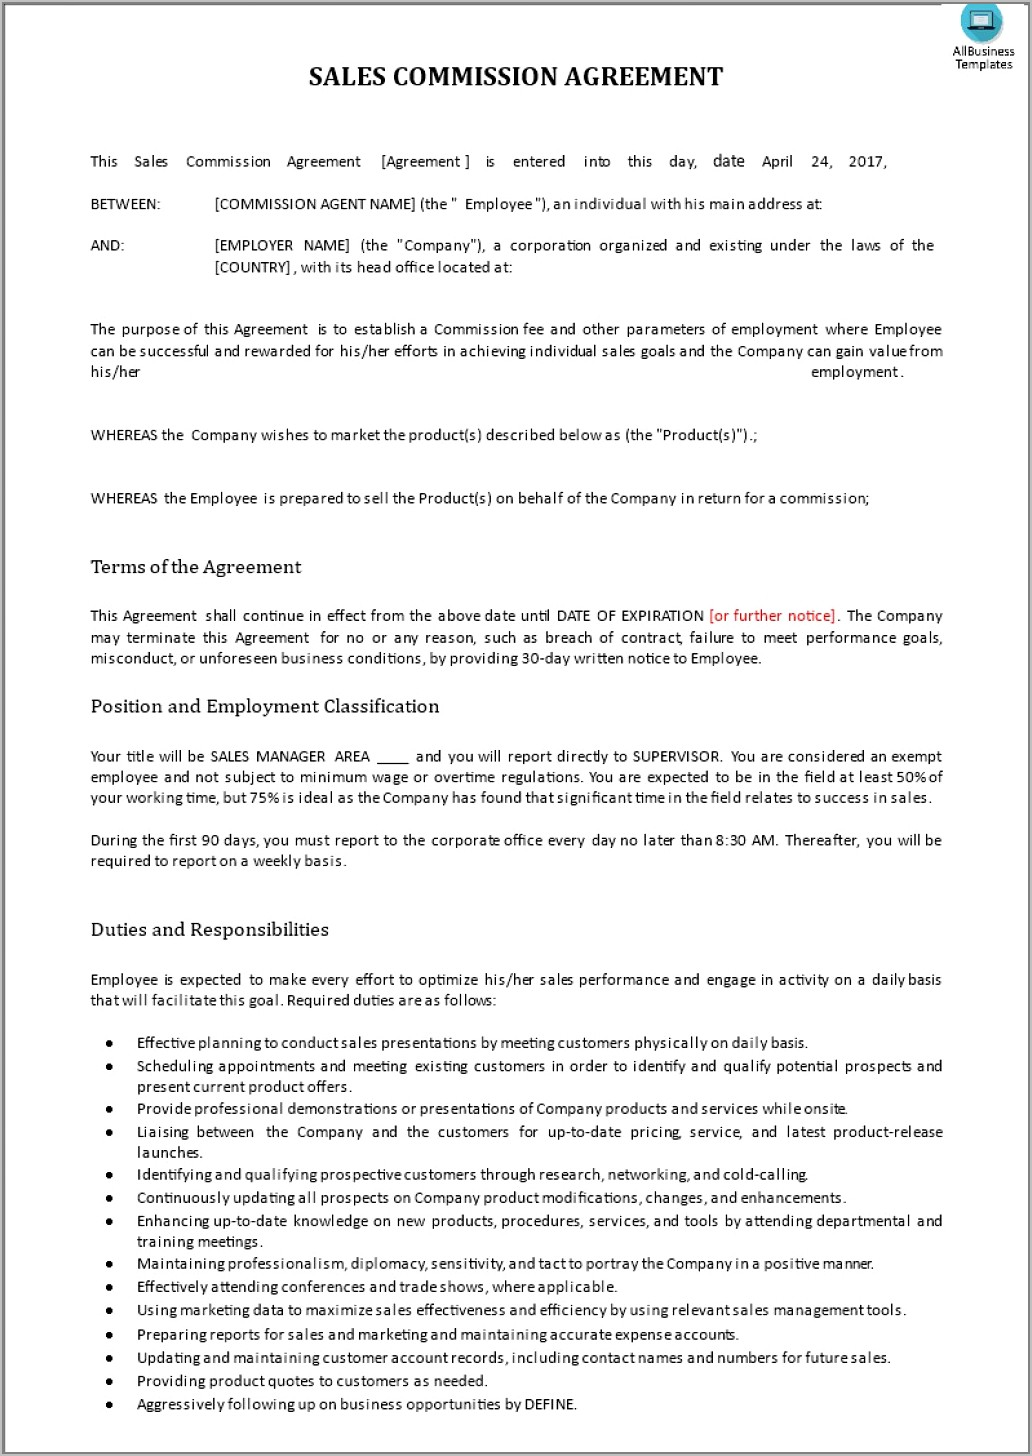 Sales Commission Agreement Template Doc